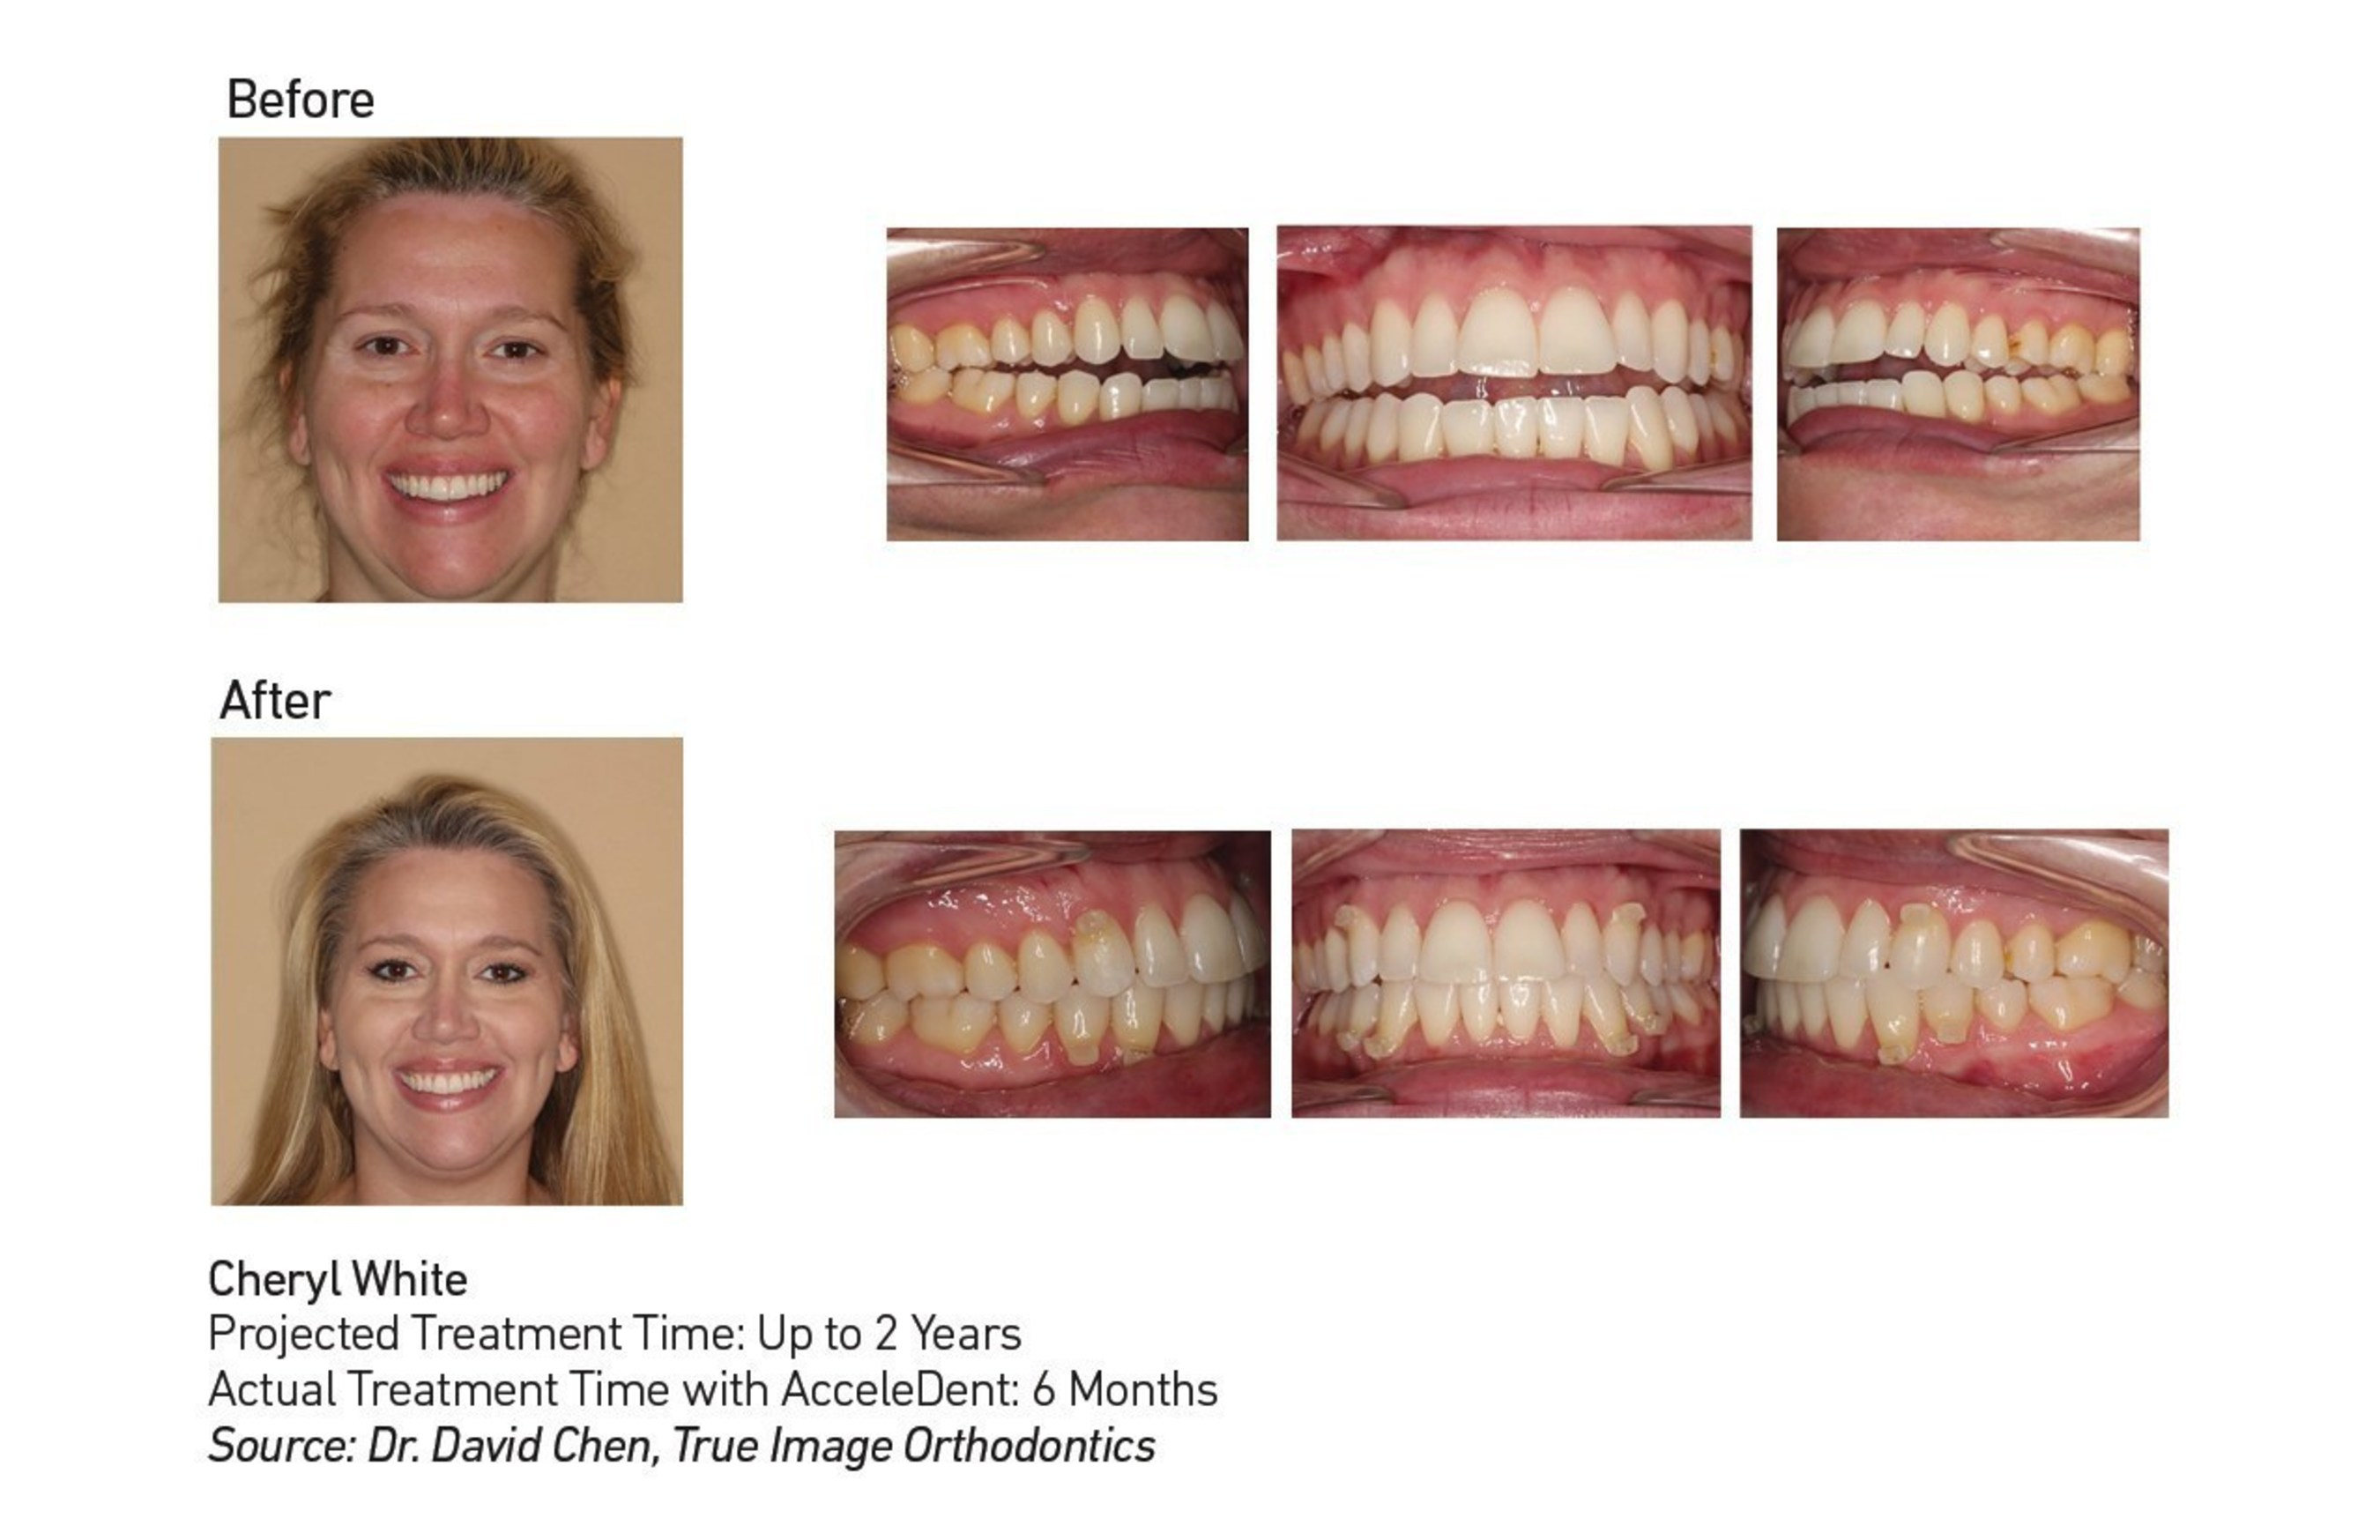 A professional singer and music teacher, Cheryl White completed orthodontic treatment with AcceleDent in just six months to correct an open bite. Her orthodontist, Dr. David Chen of True Image Orthodontics in Cypress, Texas, said that correction of an open bite can take up to two years. AcceleDent is an FDA-cleared vibratory orthodontic device that works in conjunction with braces or aligners to speed up orthodontic treatment by as much as 50 percent.